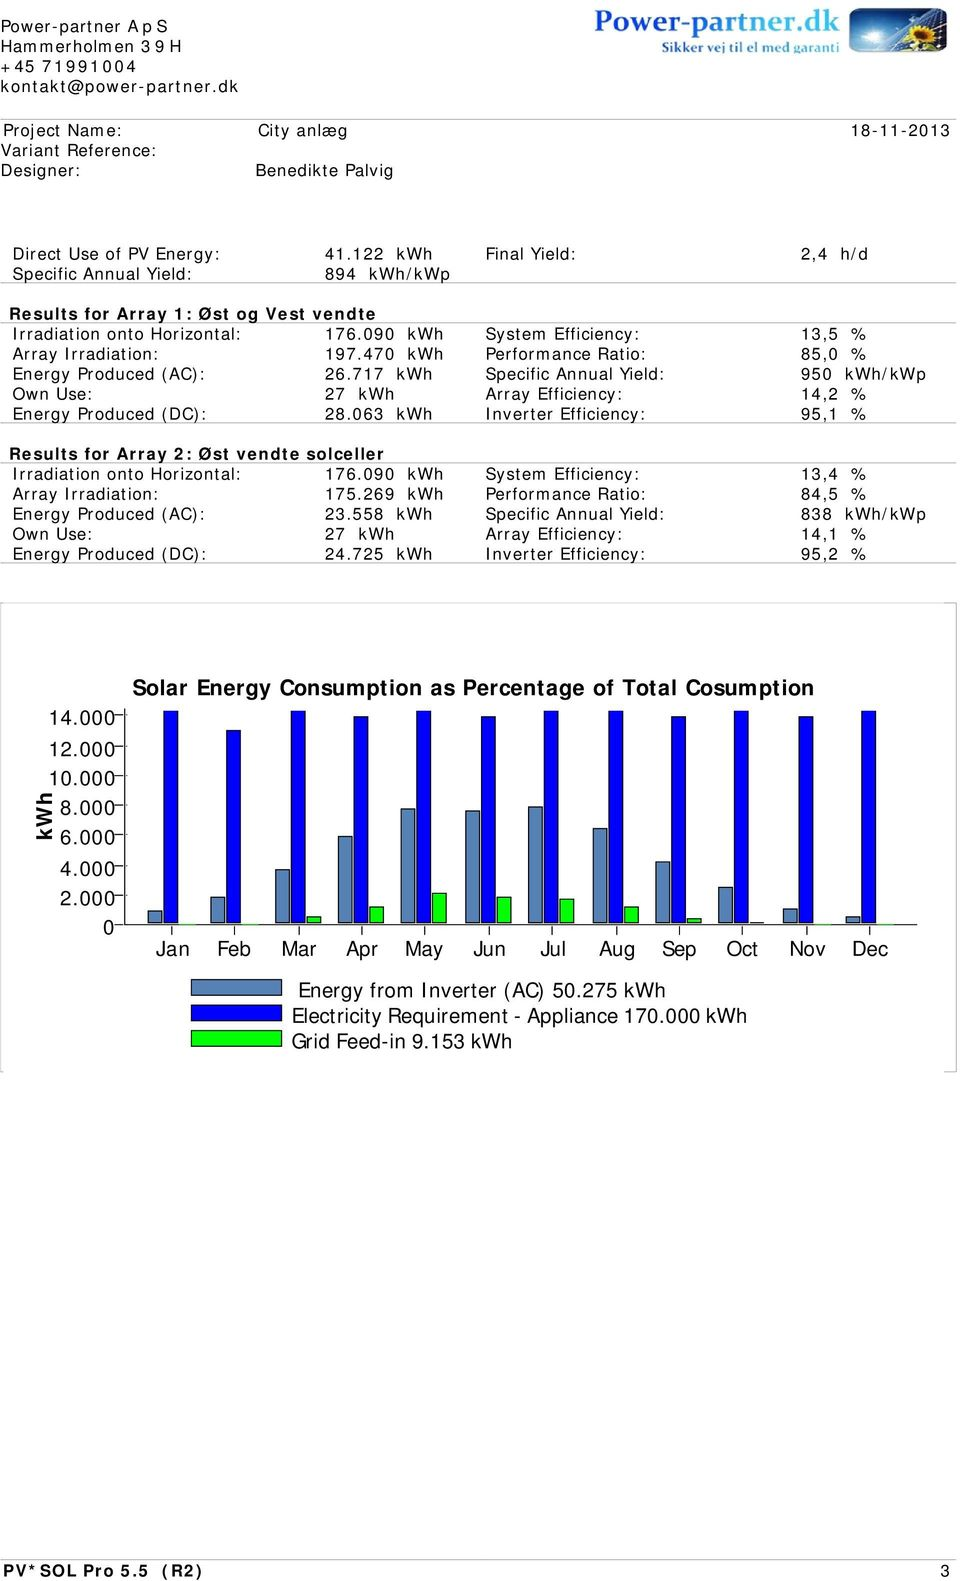 470 kwh Performance Ratio: 85,0 % Energy Produced (AC): 26.717 kwh Specific Annual Yield: 950 kwh/kwp Own Use: 27 kwh Array Efficiency: 14,2 % Energy Produced (DC): 28.